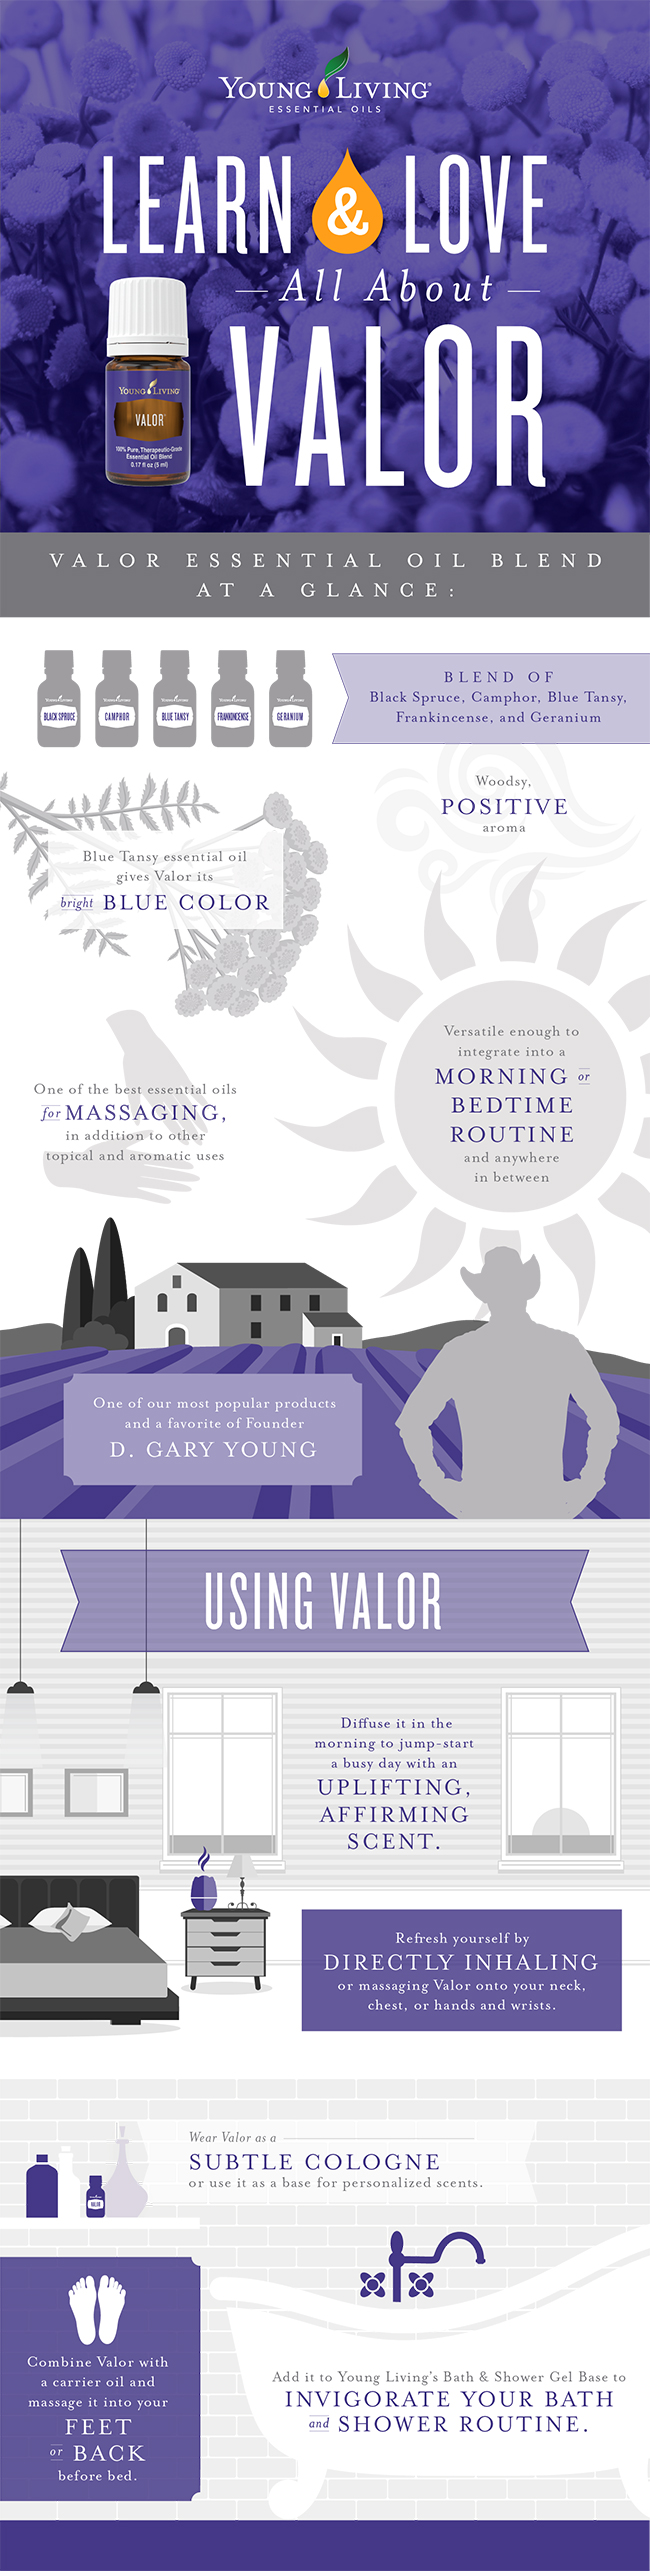 blog-Learn-Love_All-About-Valor_Infographic_US-3-002.jpg